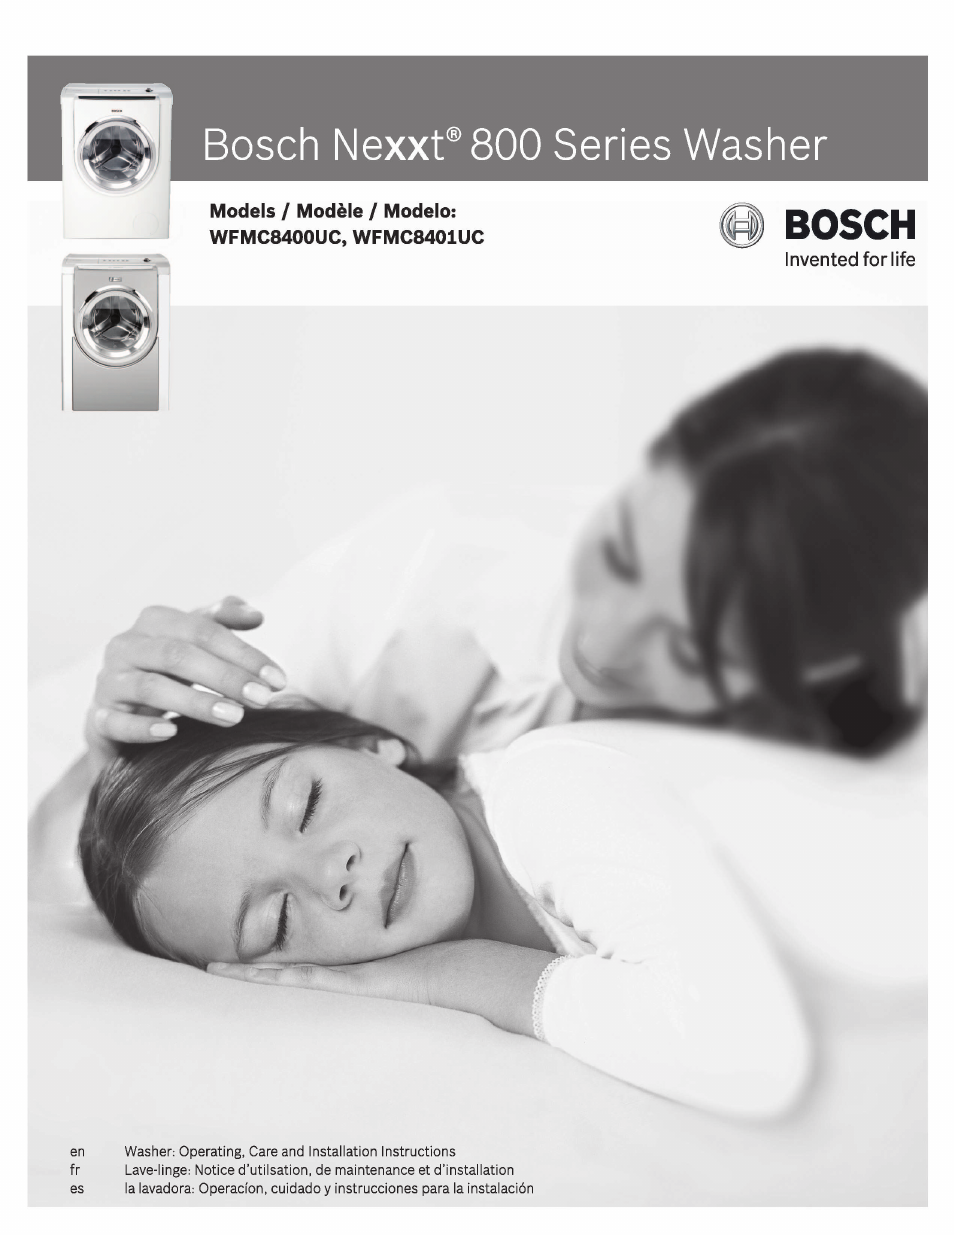 Bosch Nexxt 800 WFMC8401UC User Manual | 112 pages | Also for: Nexxt 800  WFMC8400UC, 800 WFMC8400UC